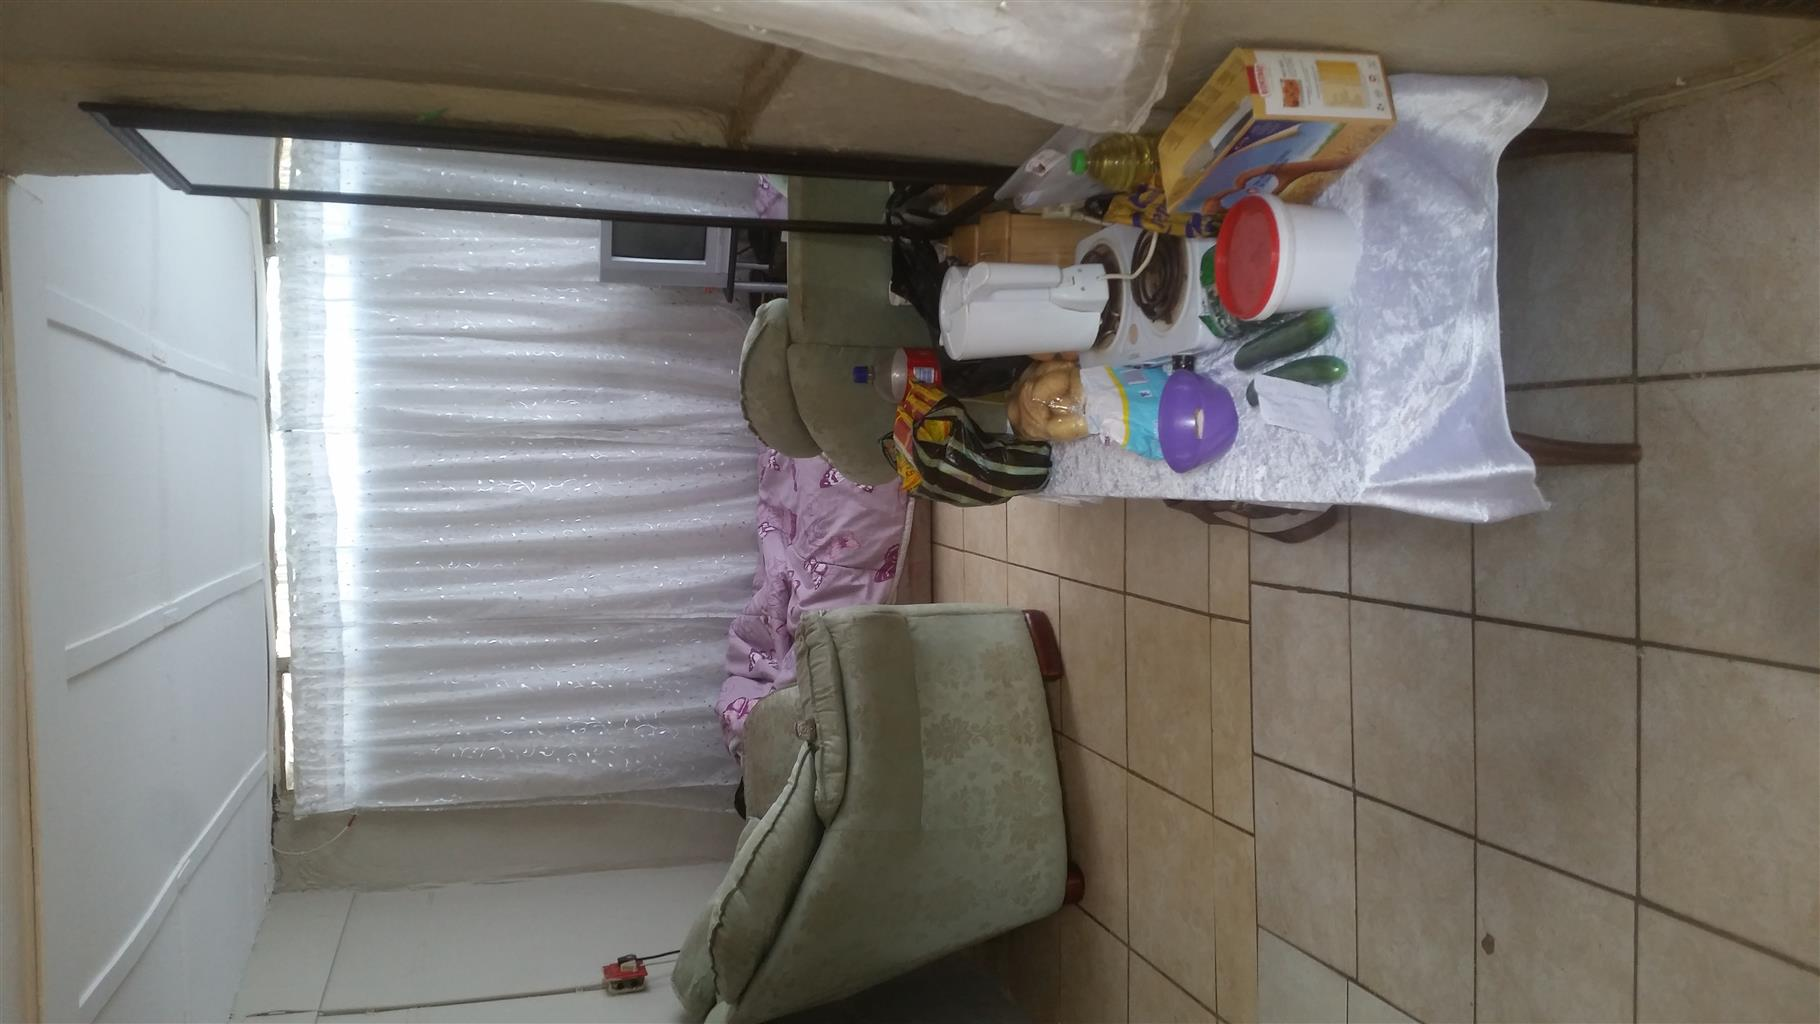 1 Bedroom Garden flat to rent